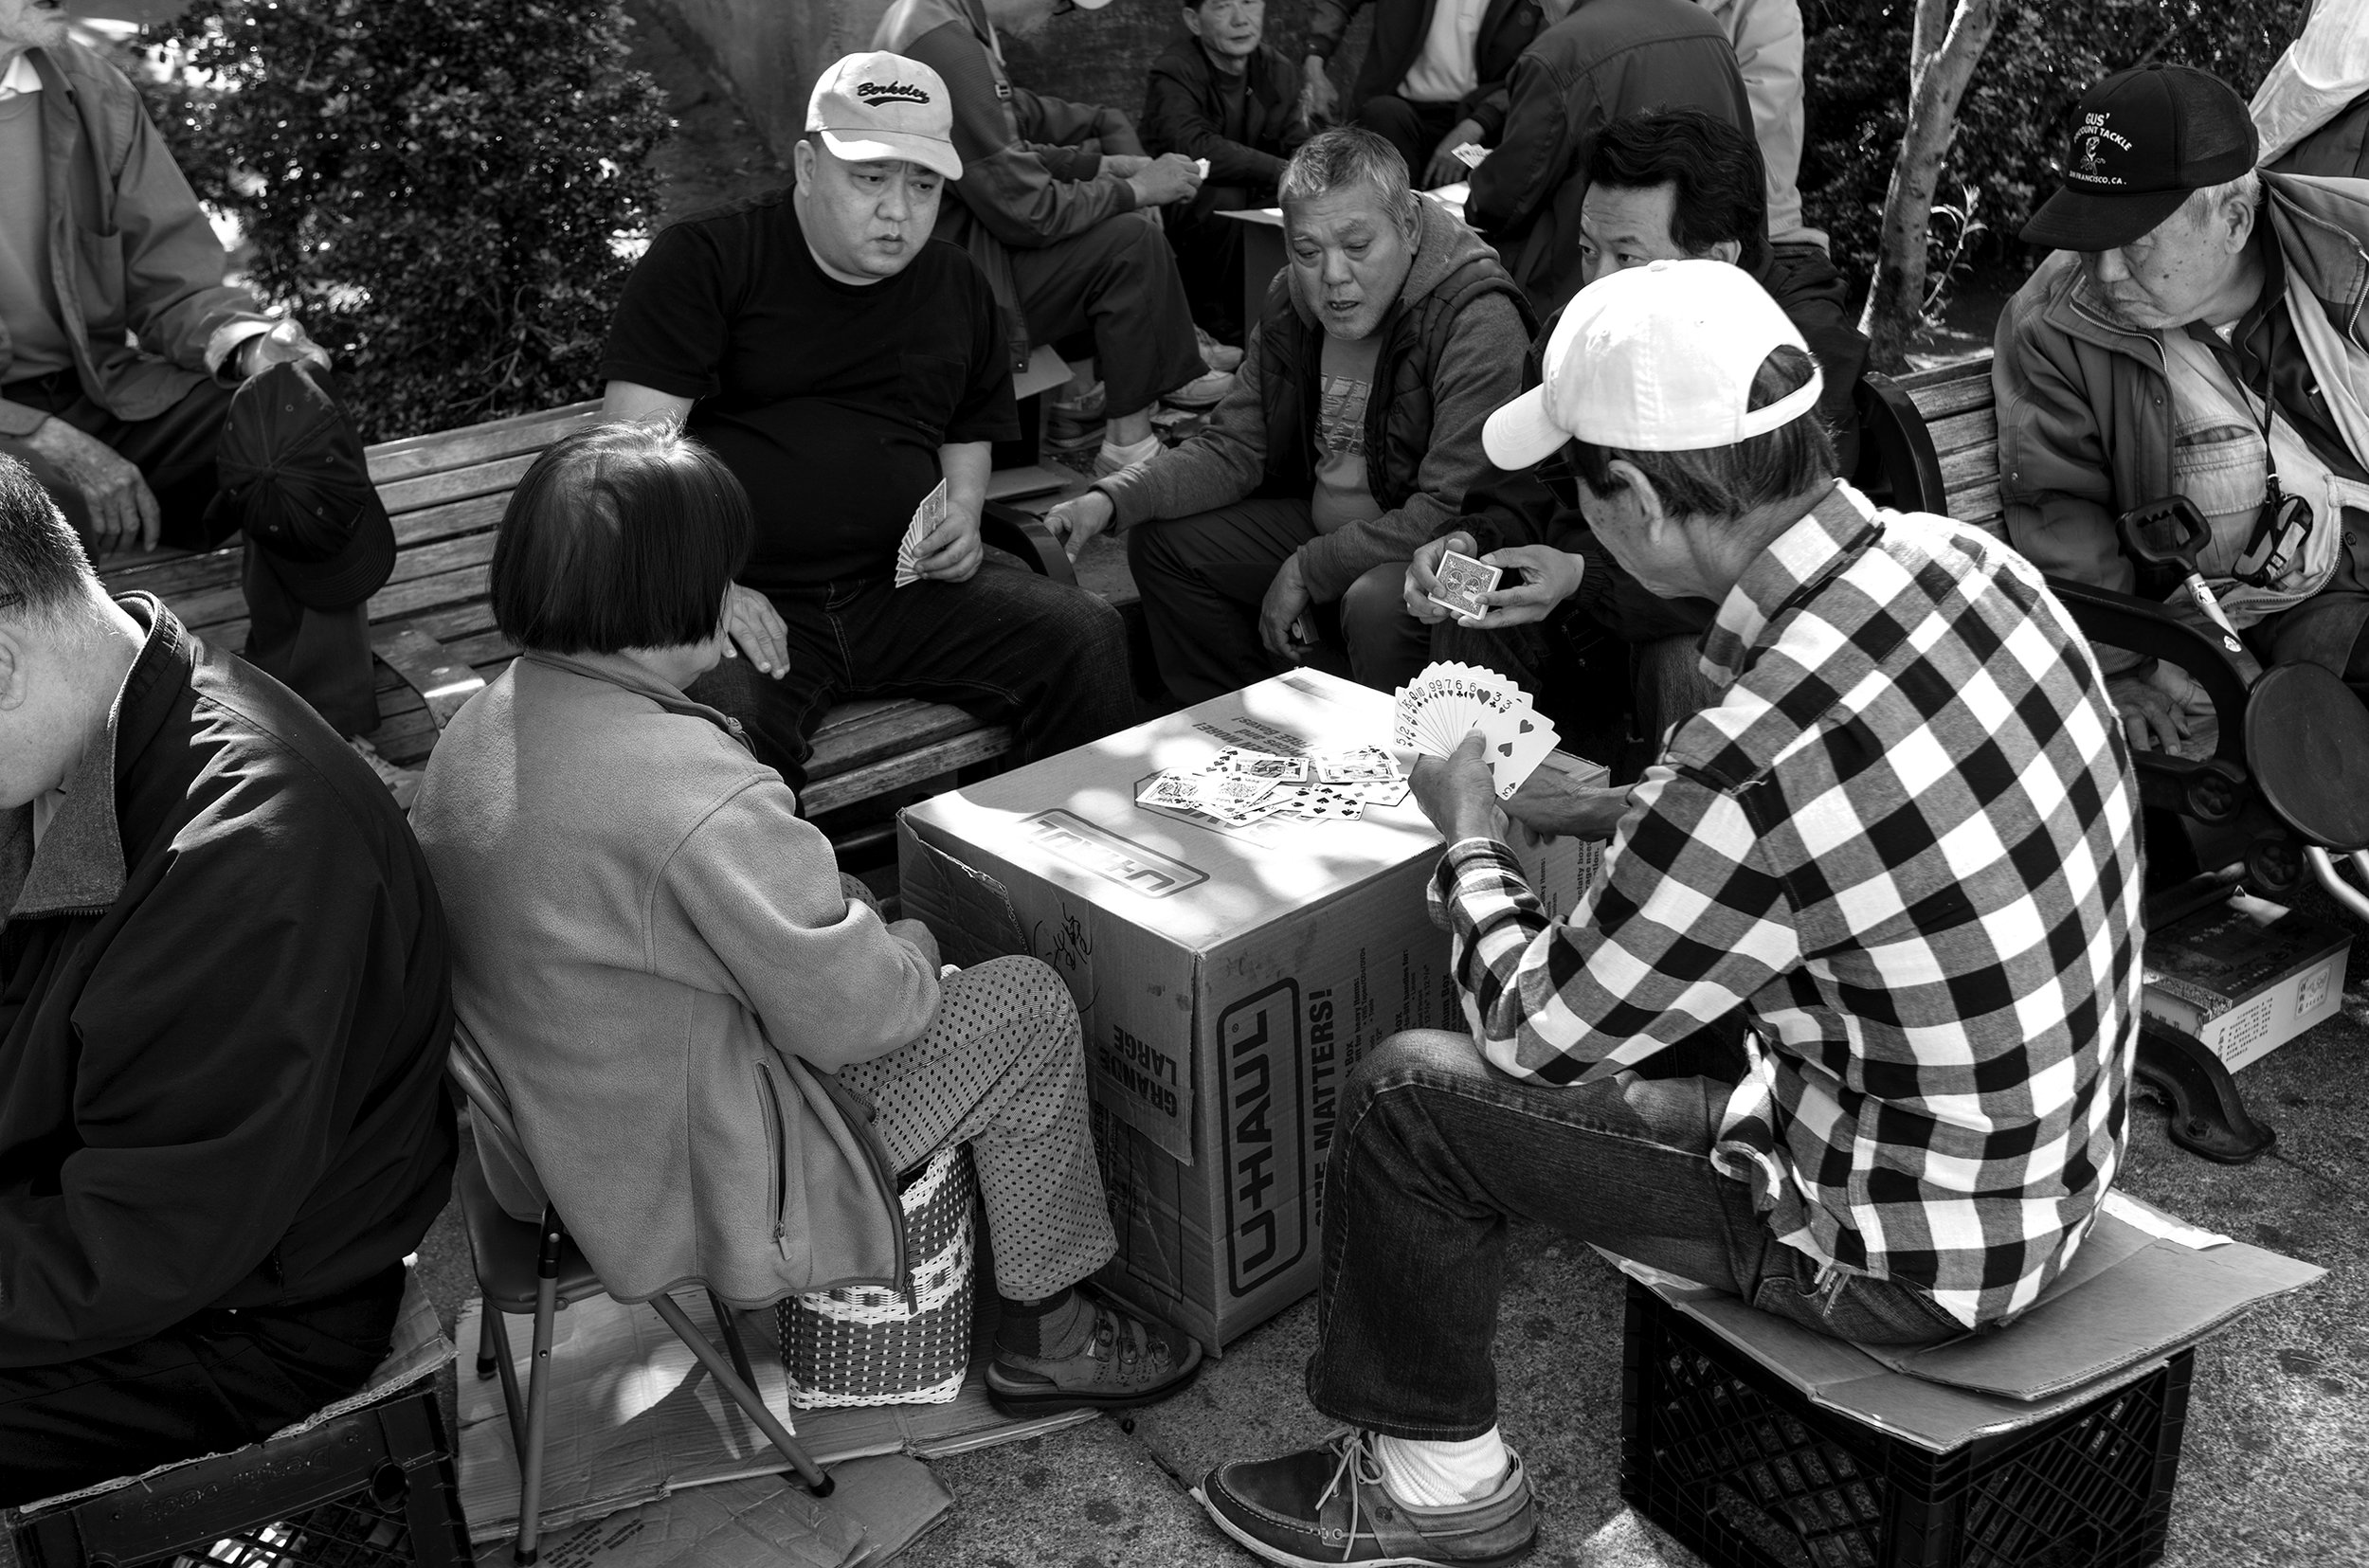 154_Scussel - Card Game Portsmouth Square B&W.jpg